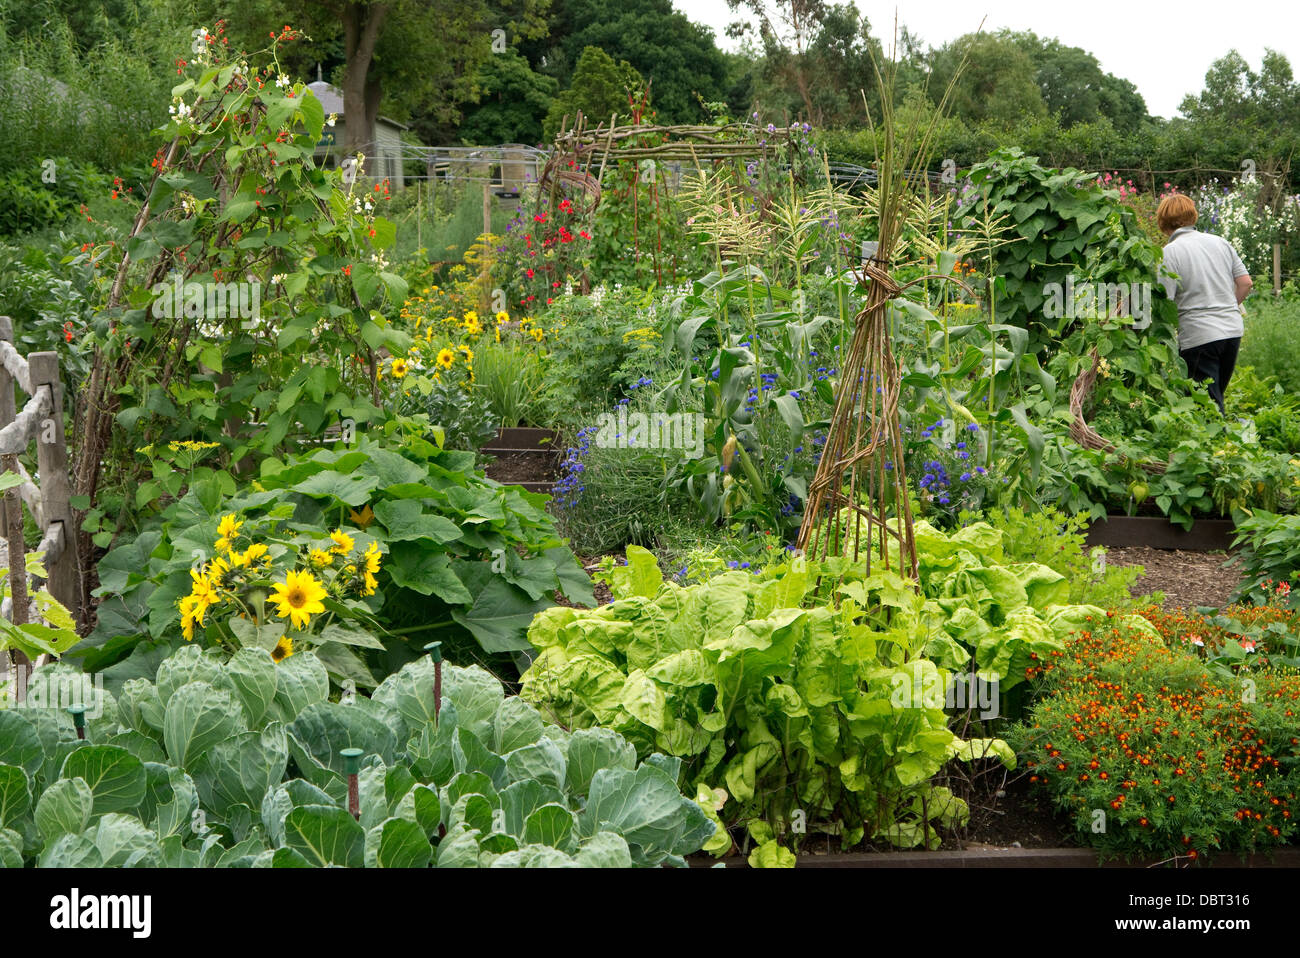 Raised bed kitchen garden with a mix of Vegetables and flowers. - Stock Image